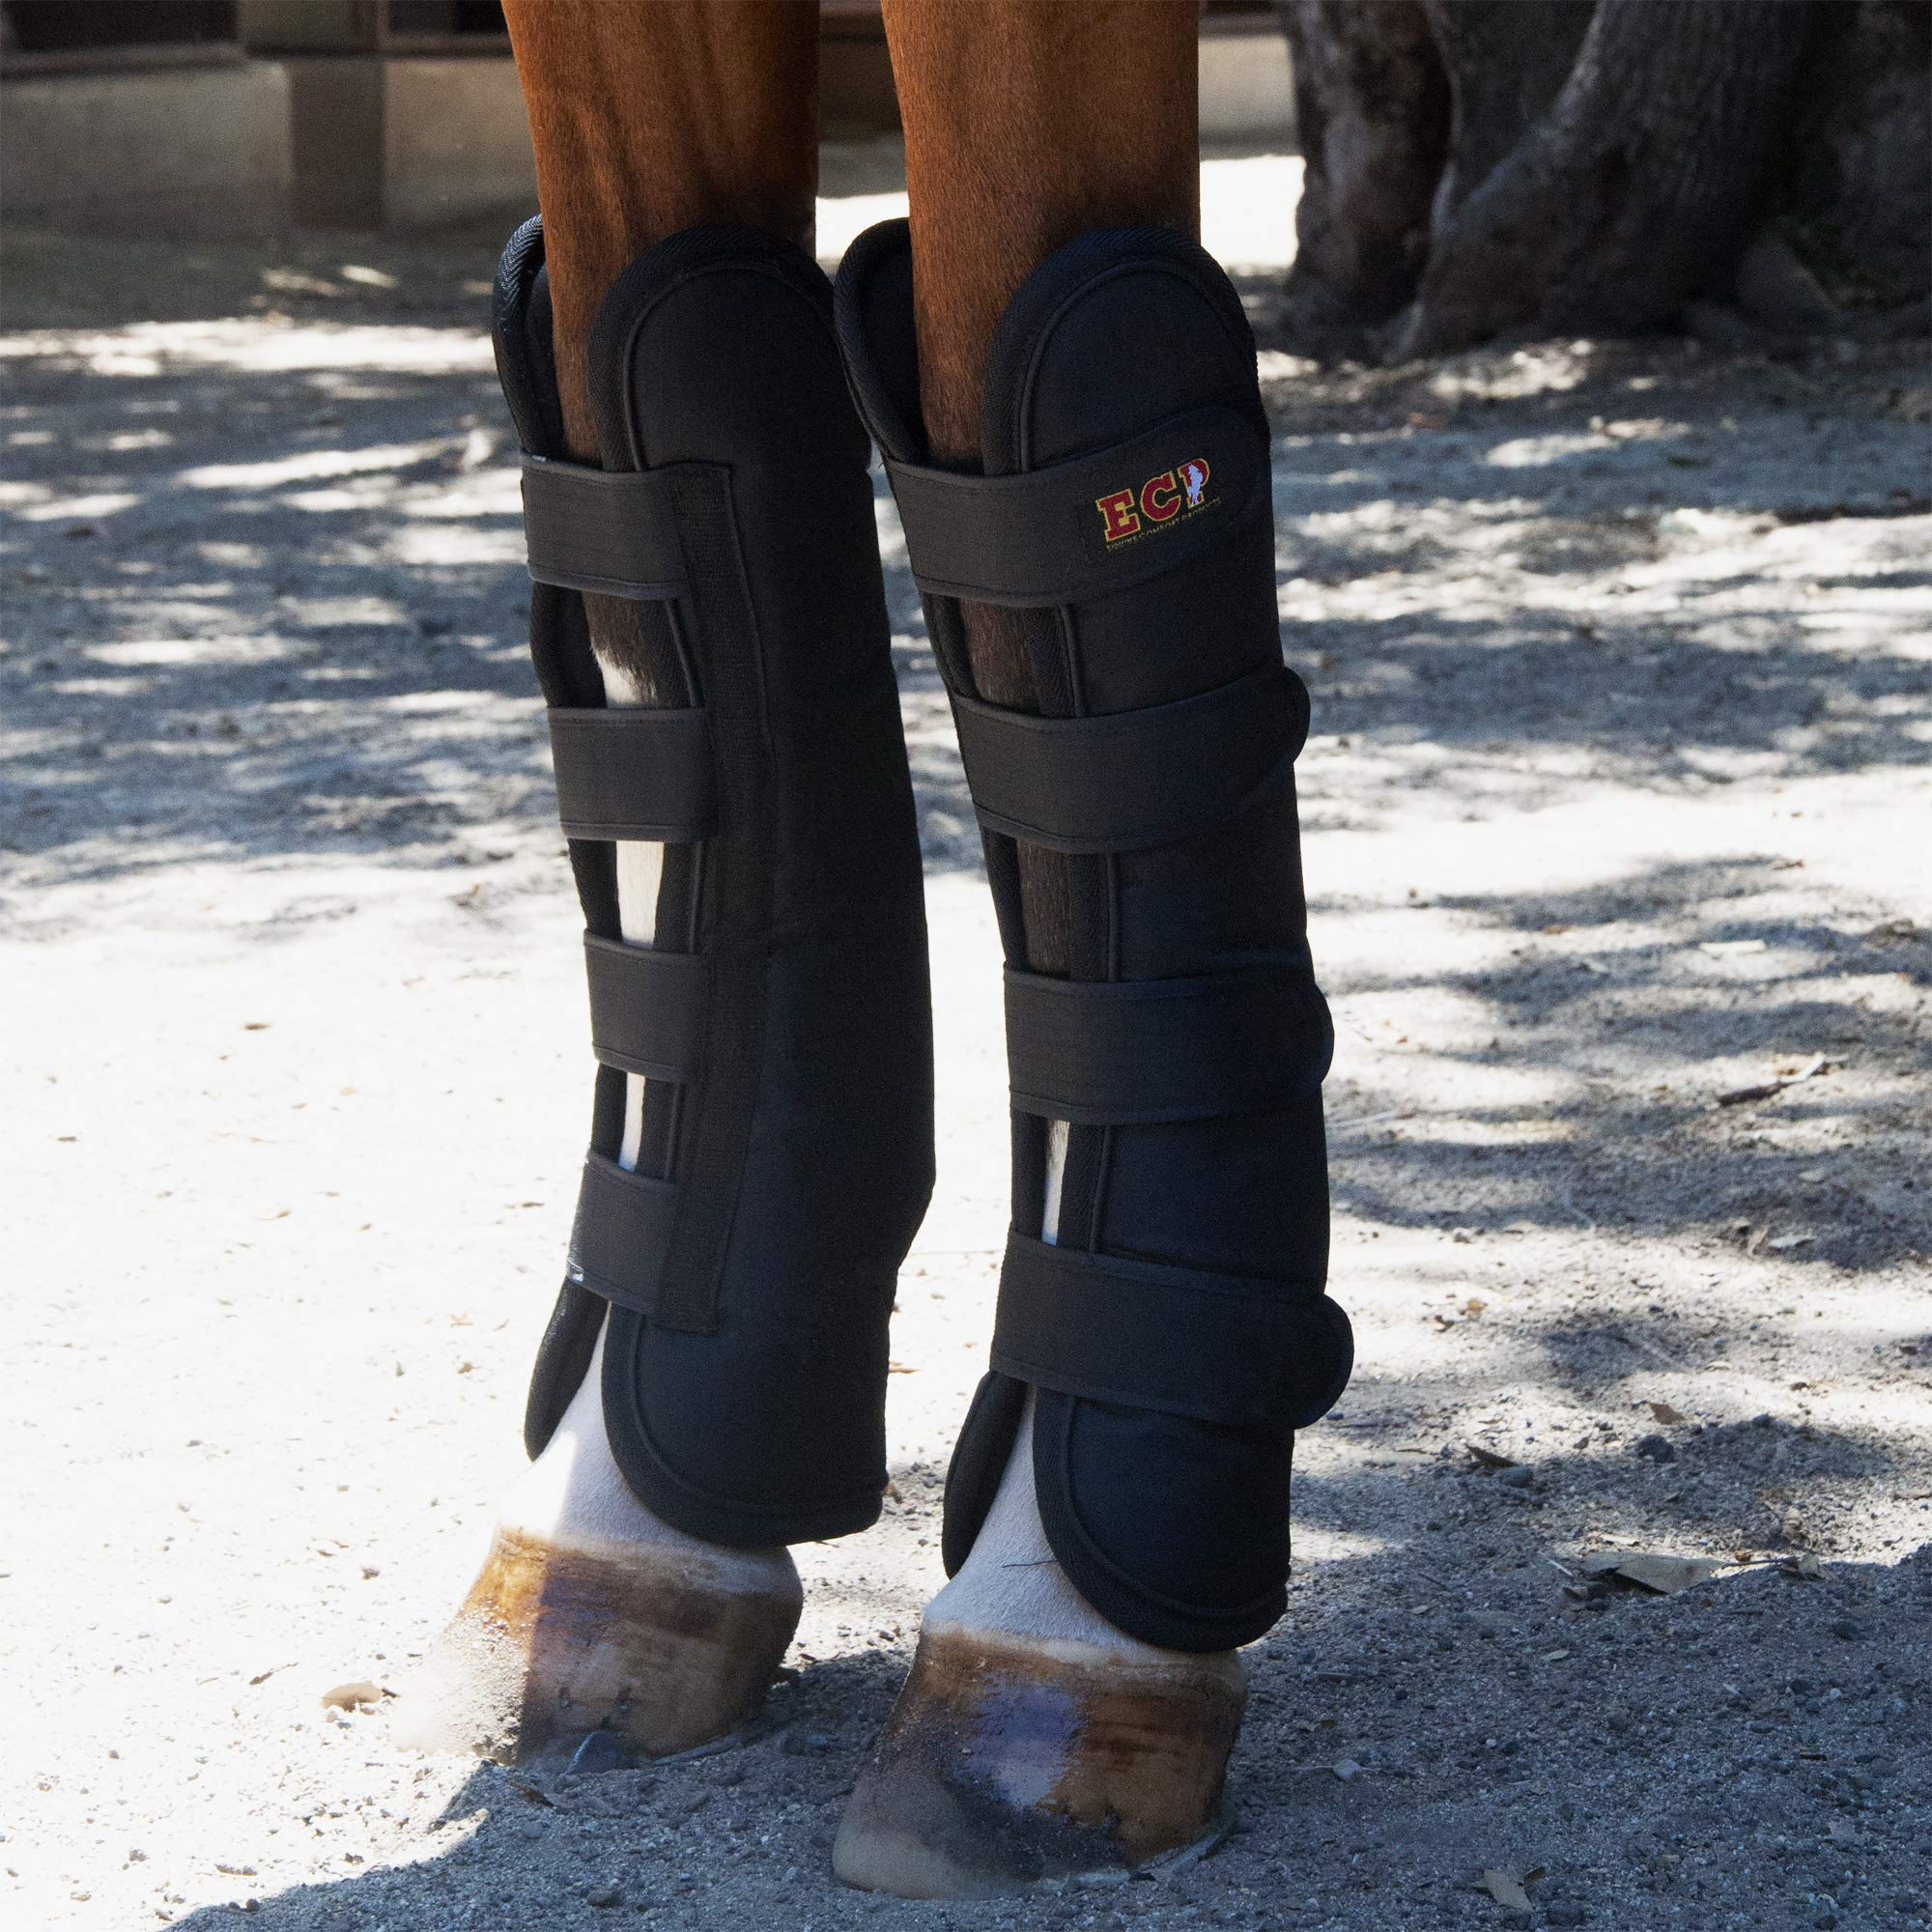 ECP Equine Comfort Products Far Infrared Heat Therapy Horse Front Leg Wraps - Large by ECP Equine Comfort Products (Image #7)